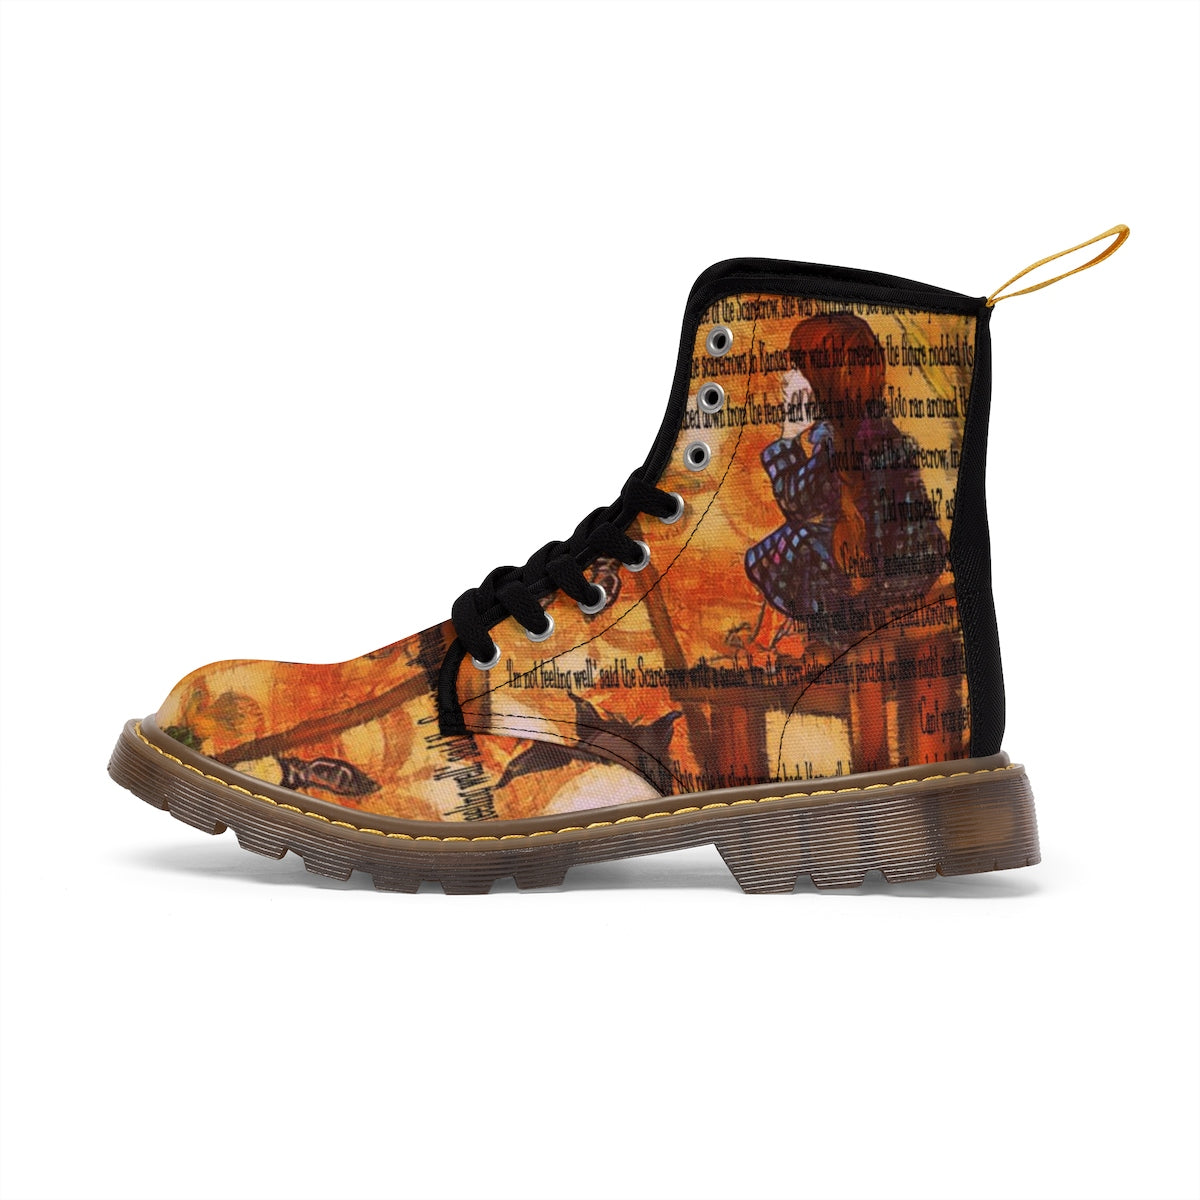 Wizard of Oz Women's Canvas Boots-Starry Meadows